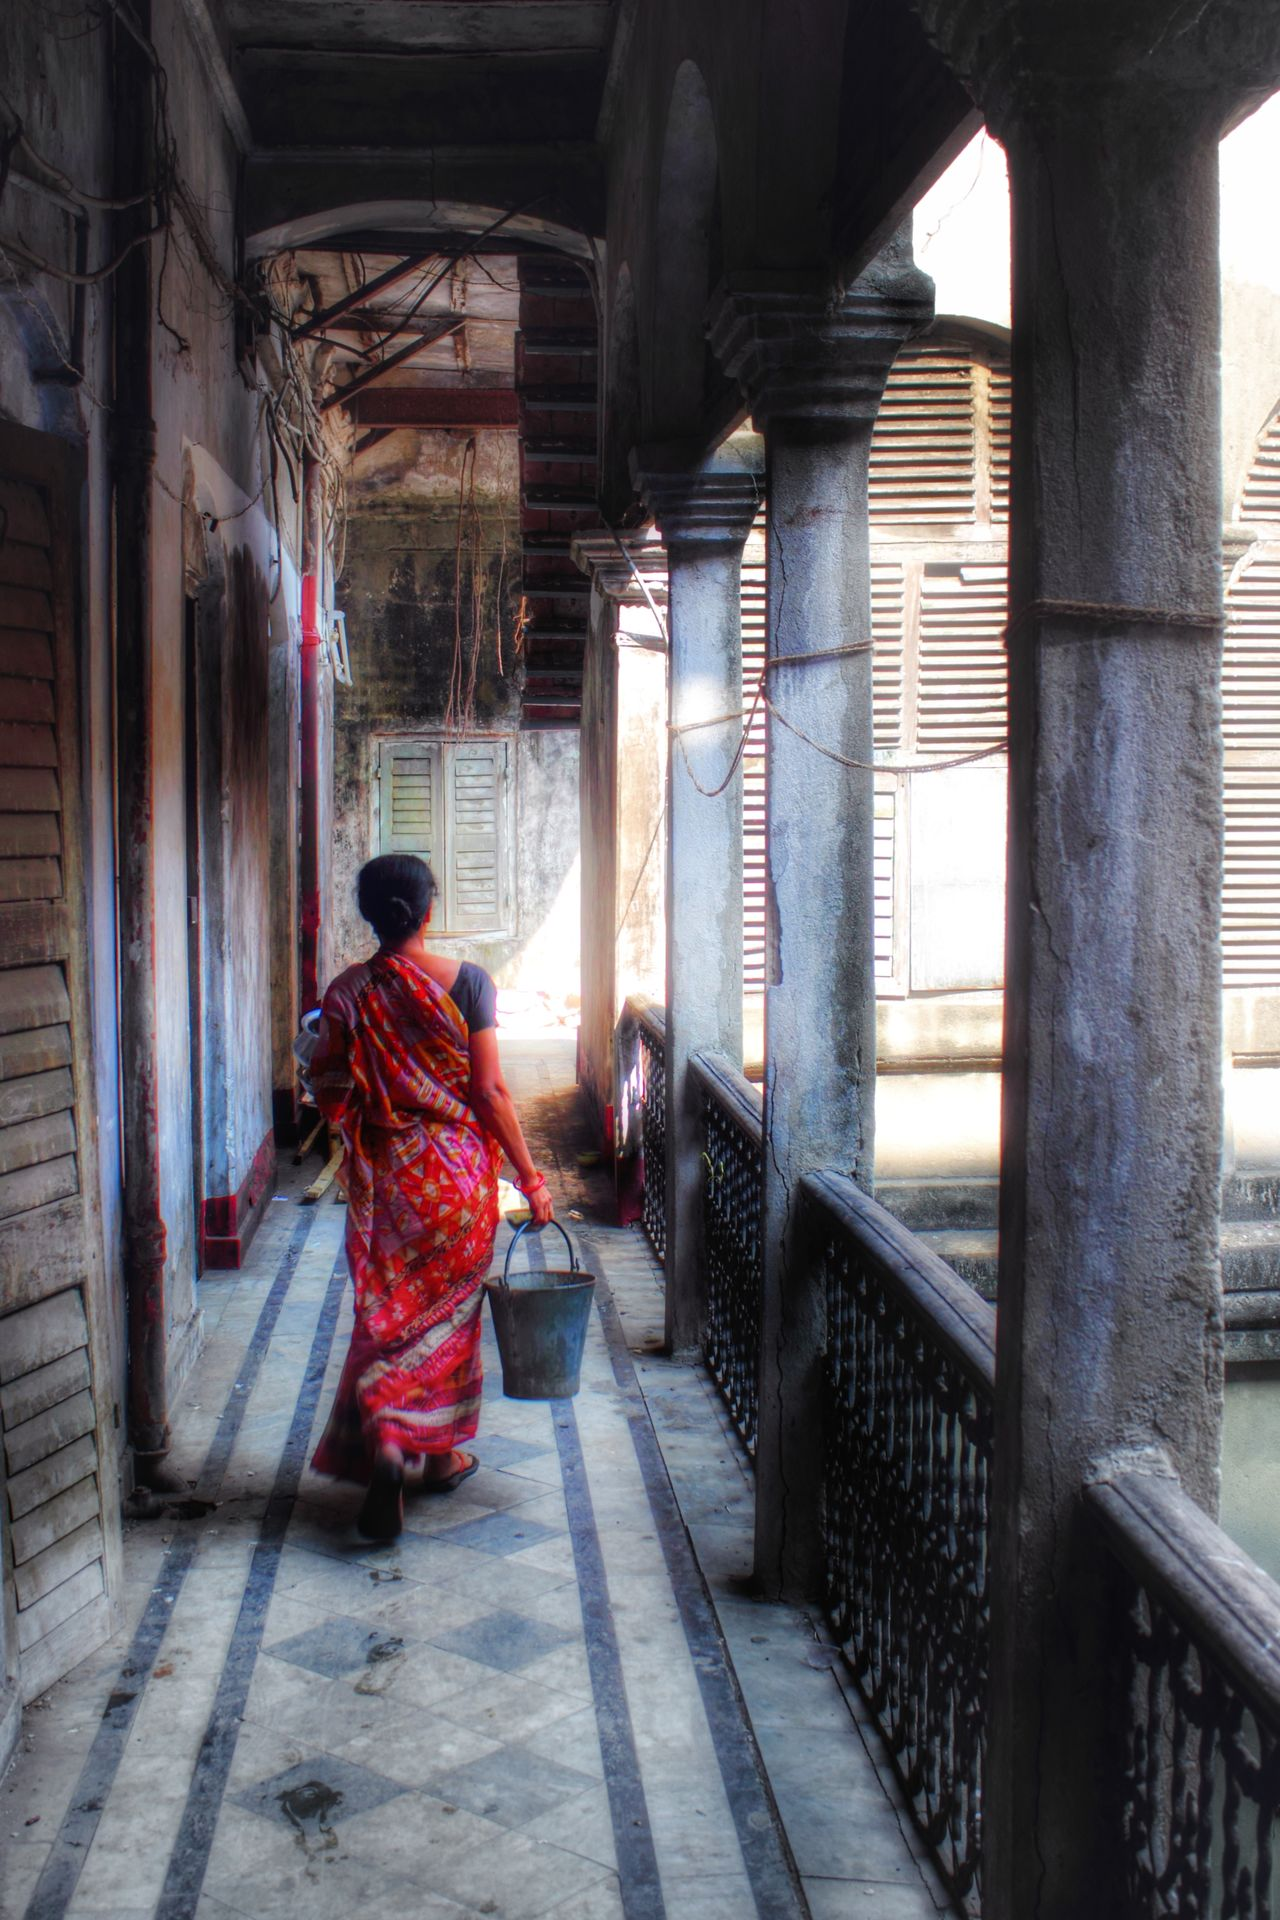 Full Length Built Structure Real People One Person Outdoors One Man Only Traditional Clothing Adult Only Men Day People Horizontal Person Architecture And Art Nature Sunlight Window Close-up Land Vehicle Cityscape Tranquility Architecture Arts Culture And Entertainment Steps And Staircases Horizontal